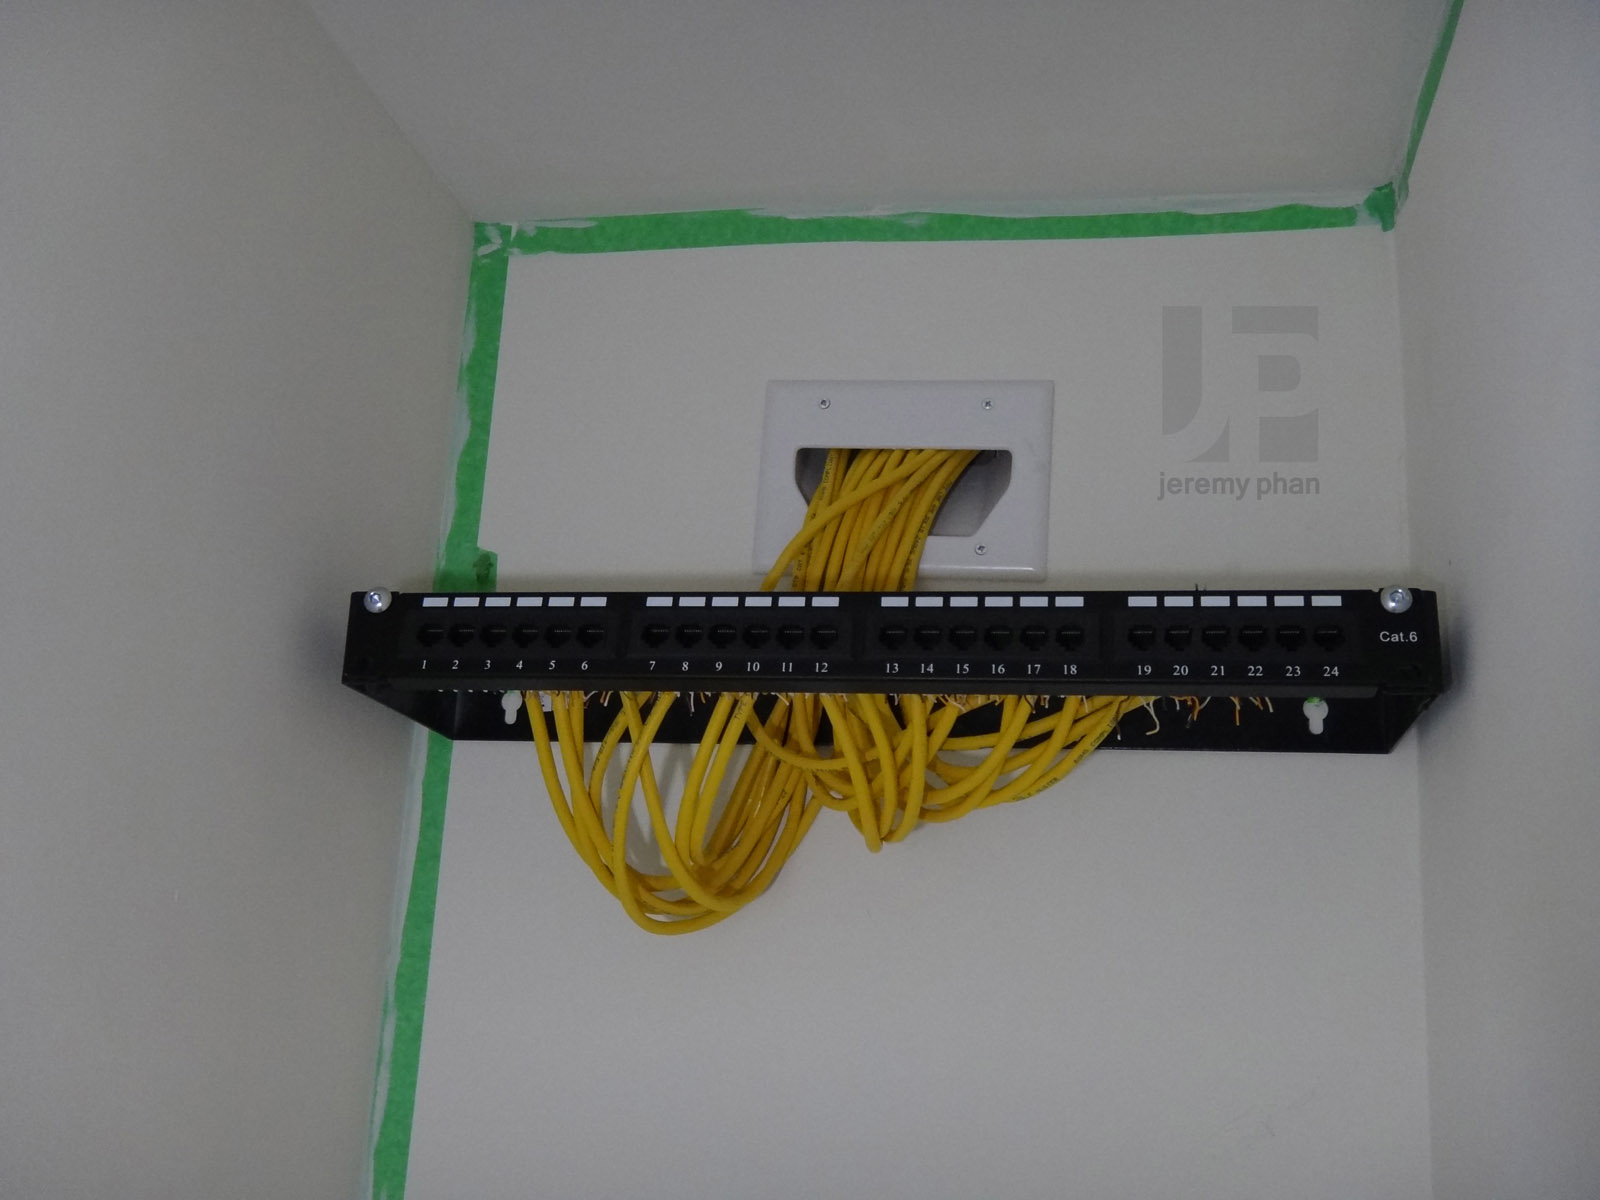 What Type Of Wall Plate For Gang 30 Cat6 Wires Homenetworking Structured Wiring Panel U Adubftw I Used A